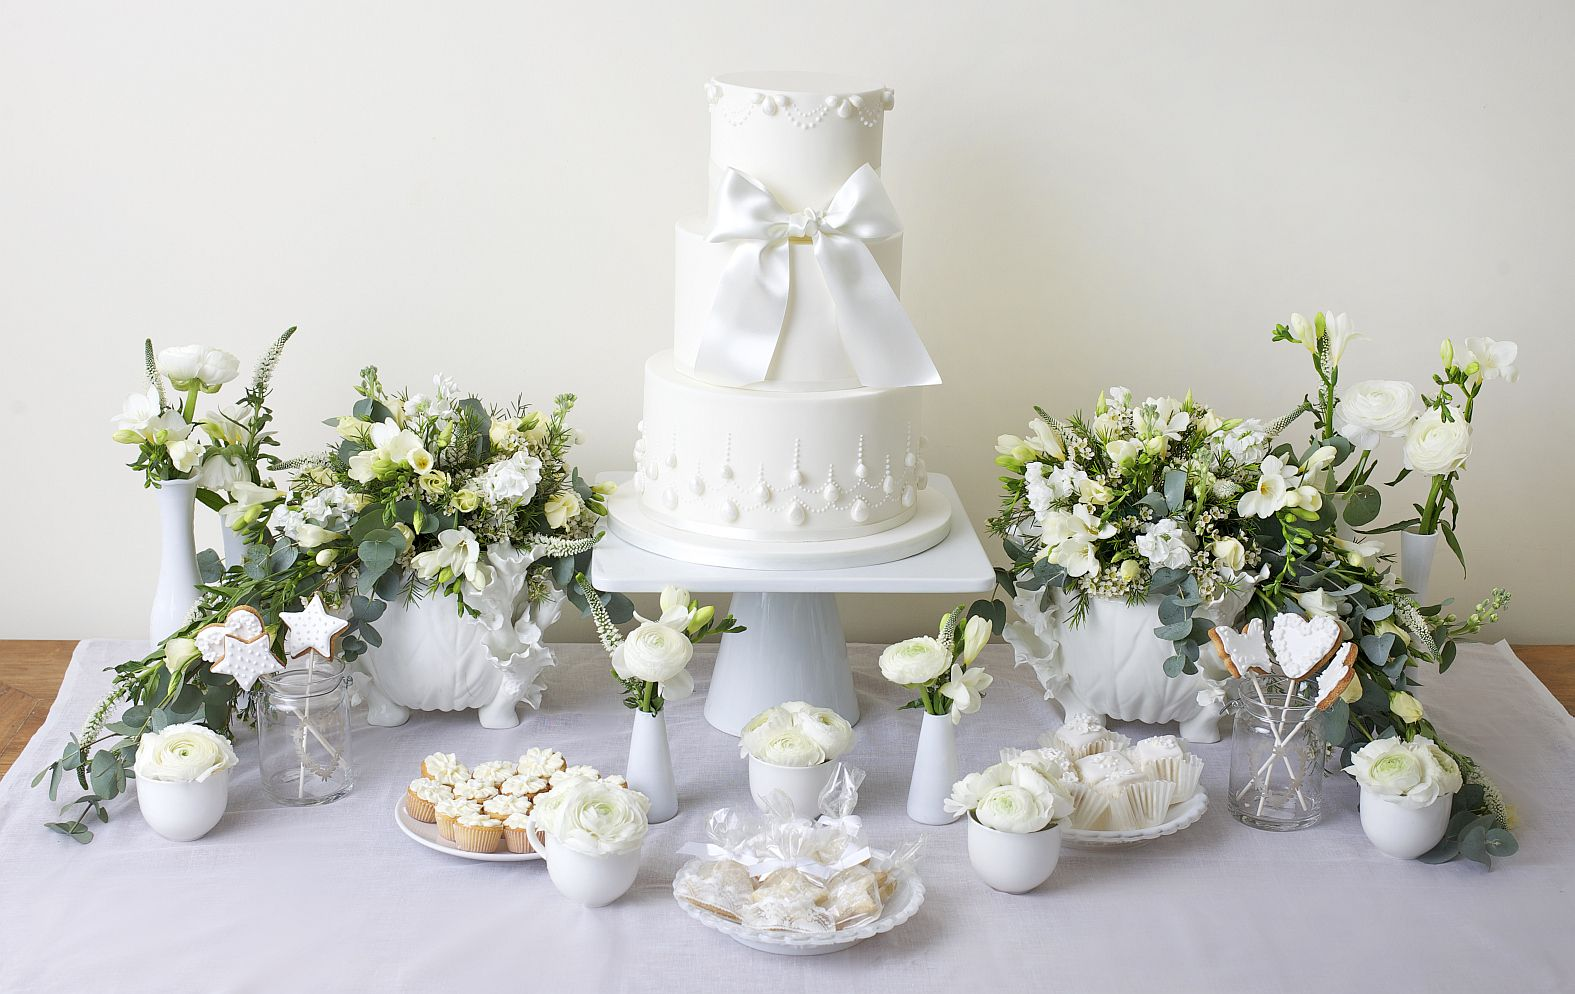 the biggest ever cake bloom cake company 14 tier - Google Search